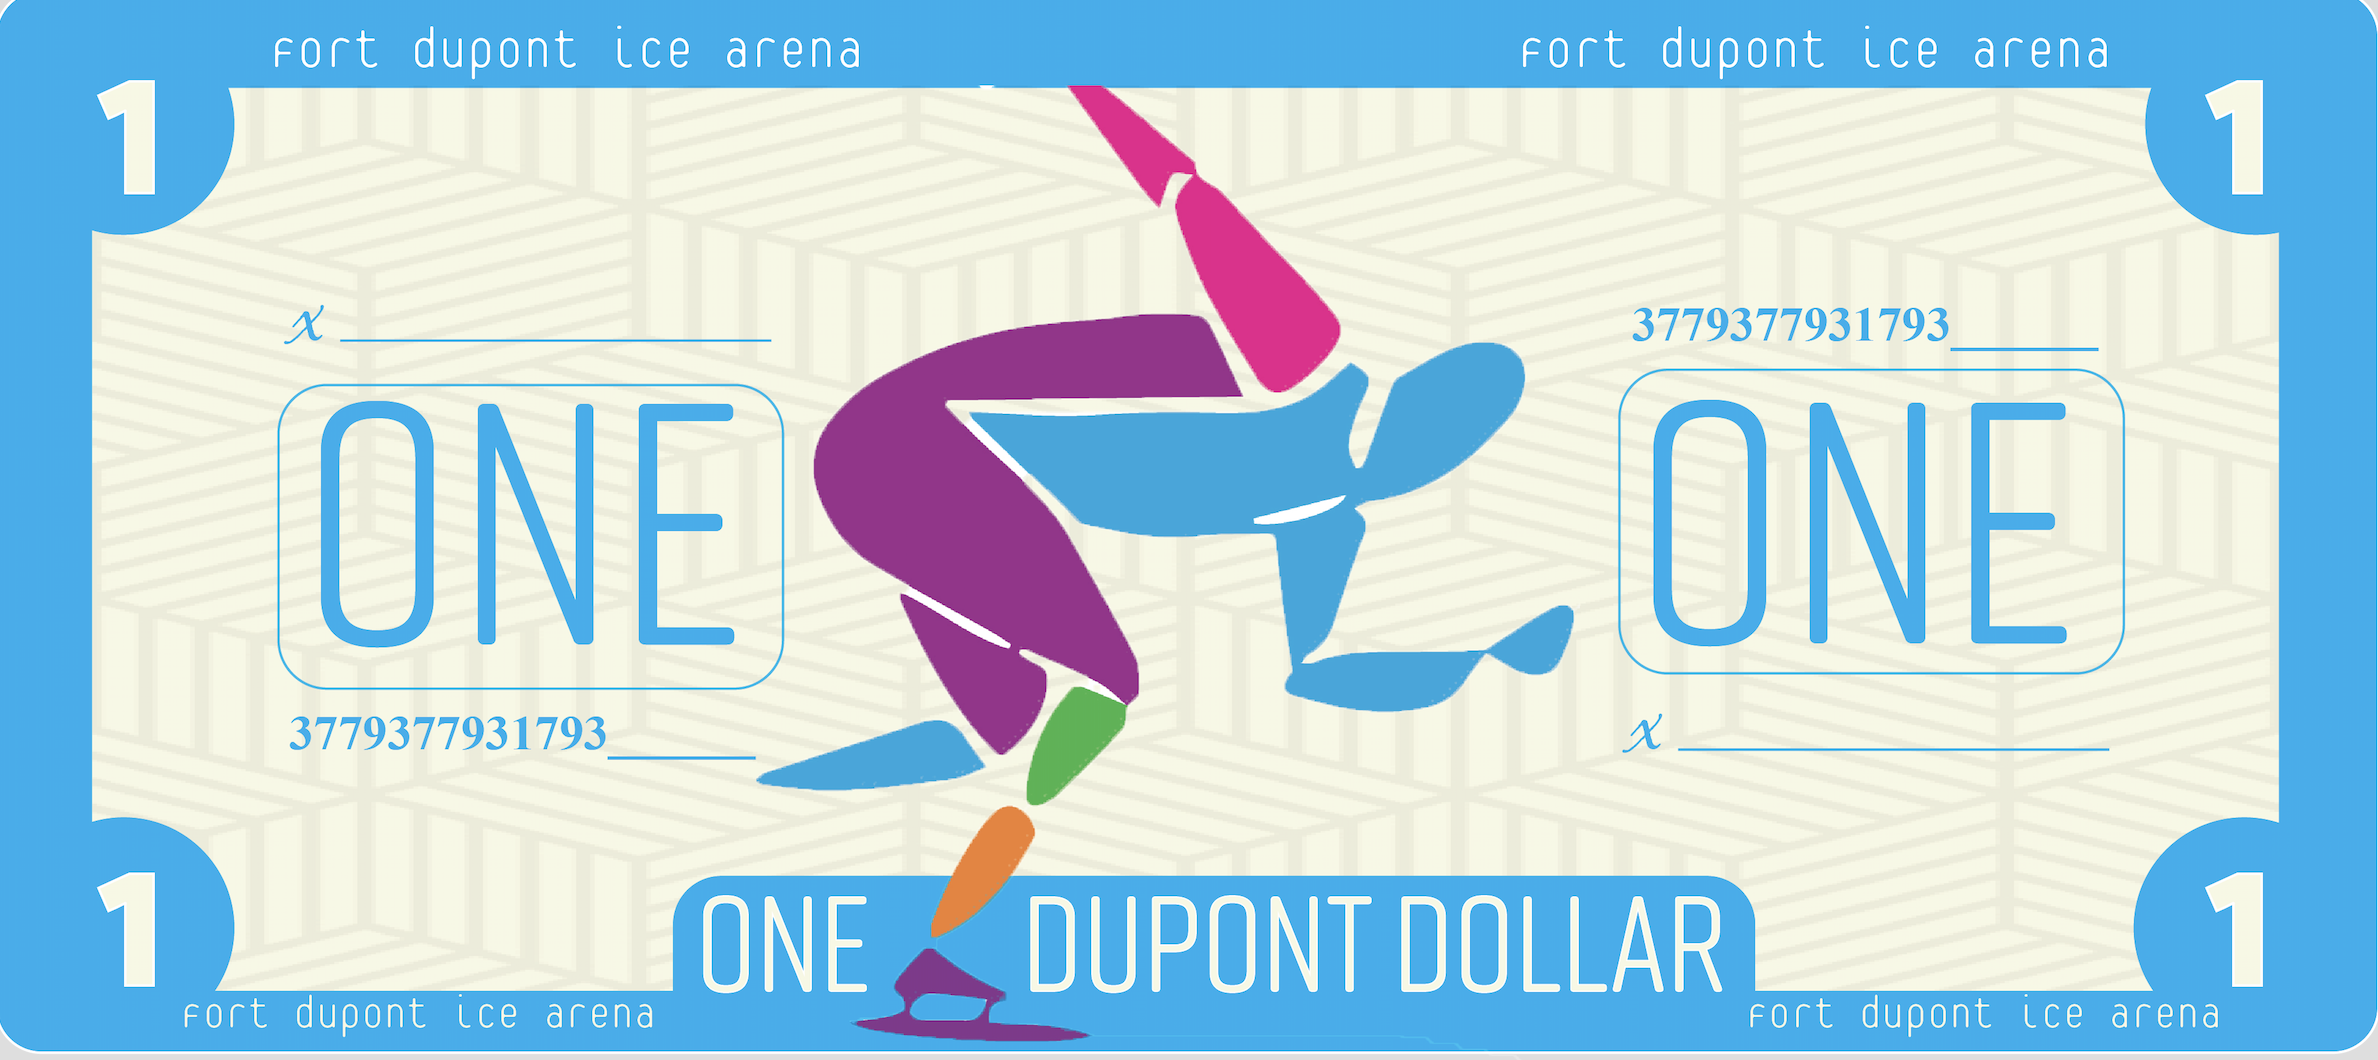 FDIA Dupont Dollars _ One